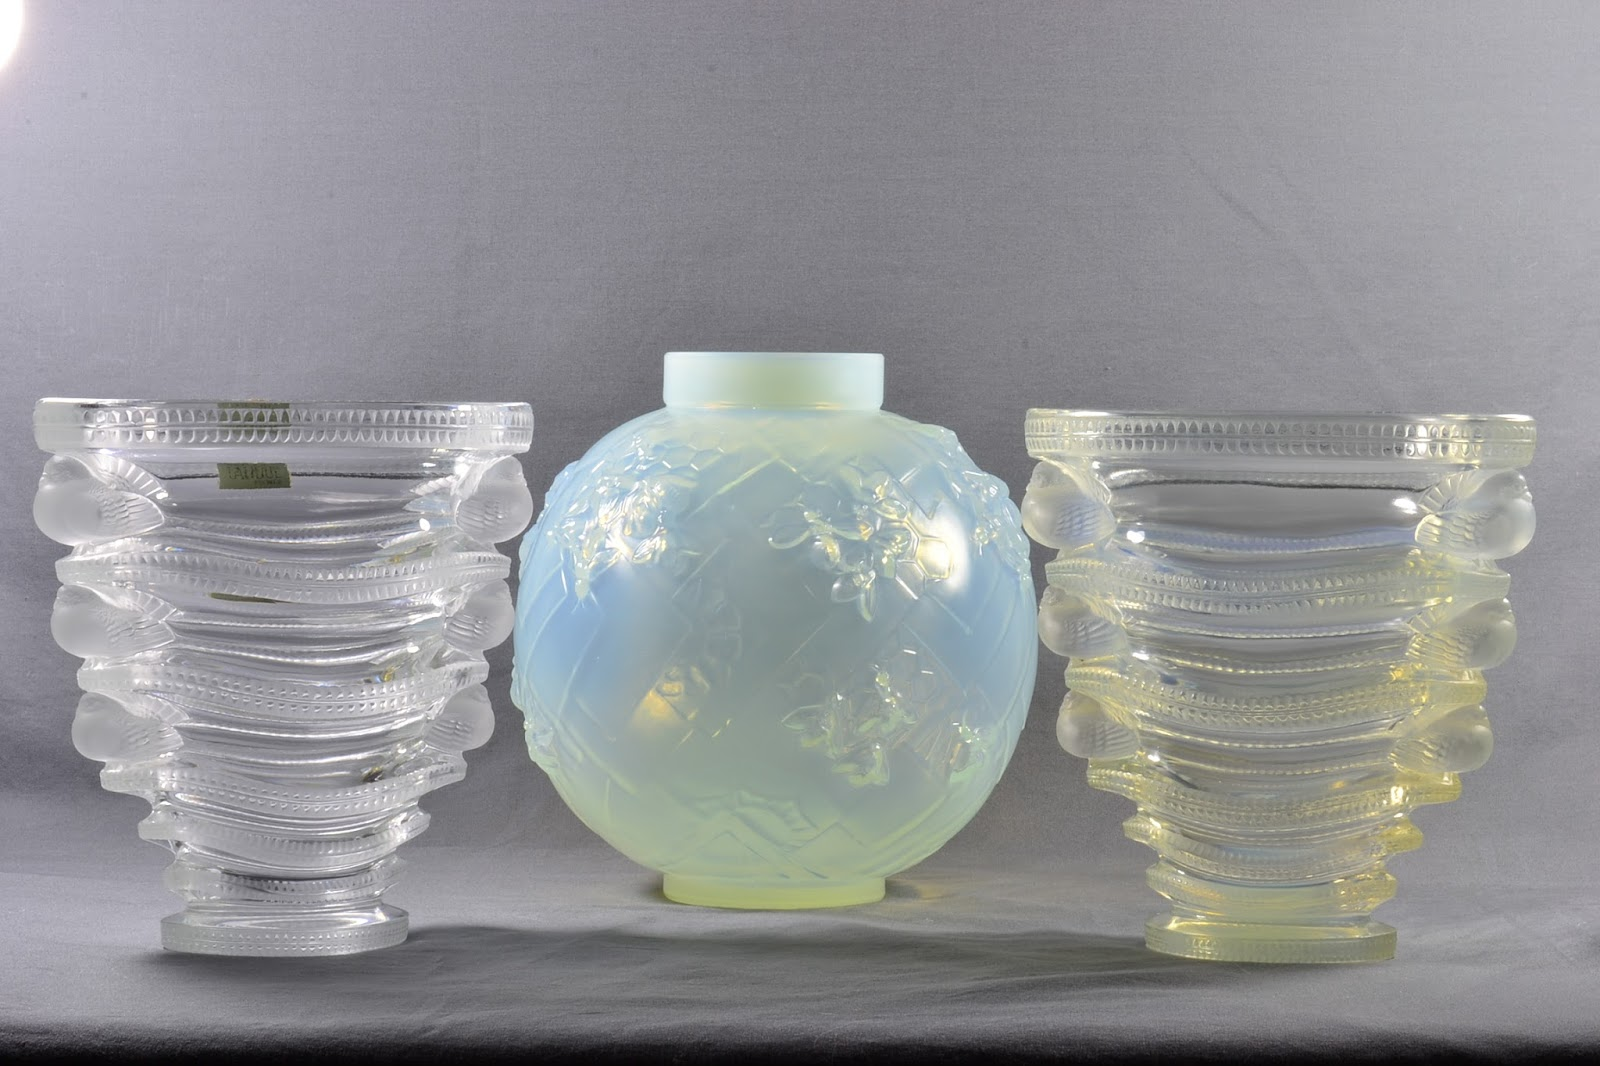 The kings fortune lalique and sabino crystal and black light visible light image of 2 lalique vases and a sabino vase reviewsmspy